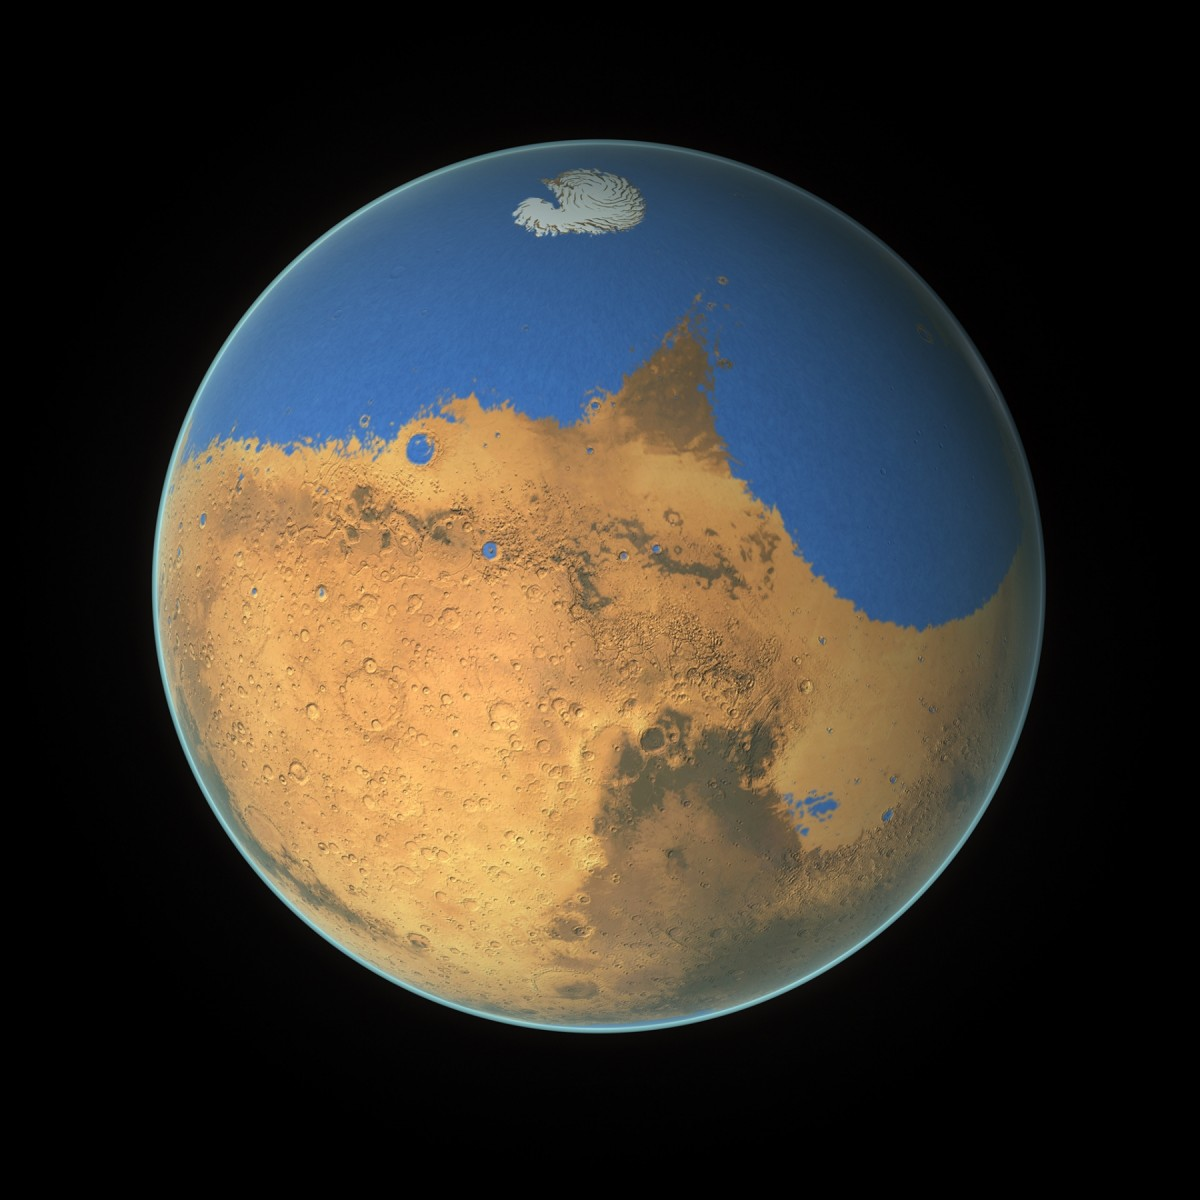 Mars with Oceans